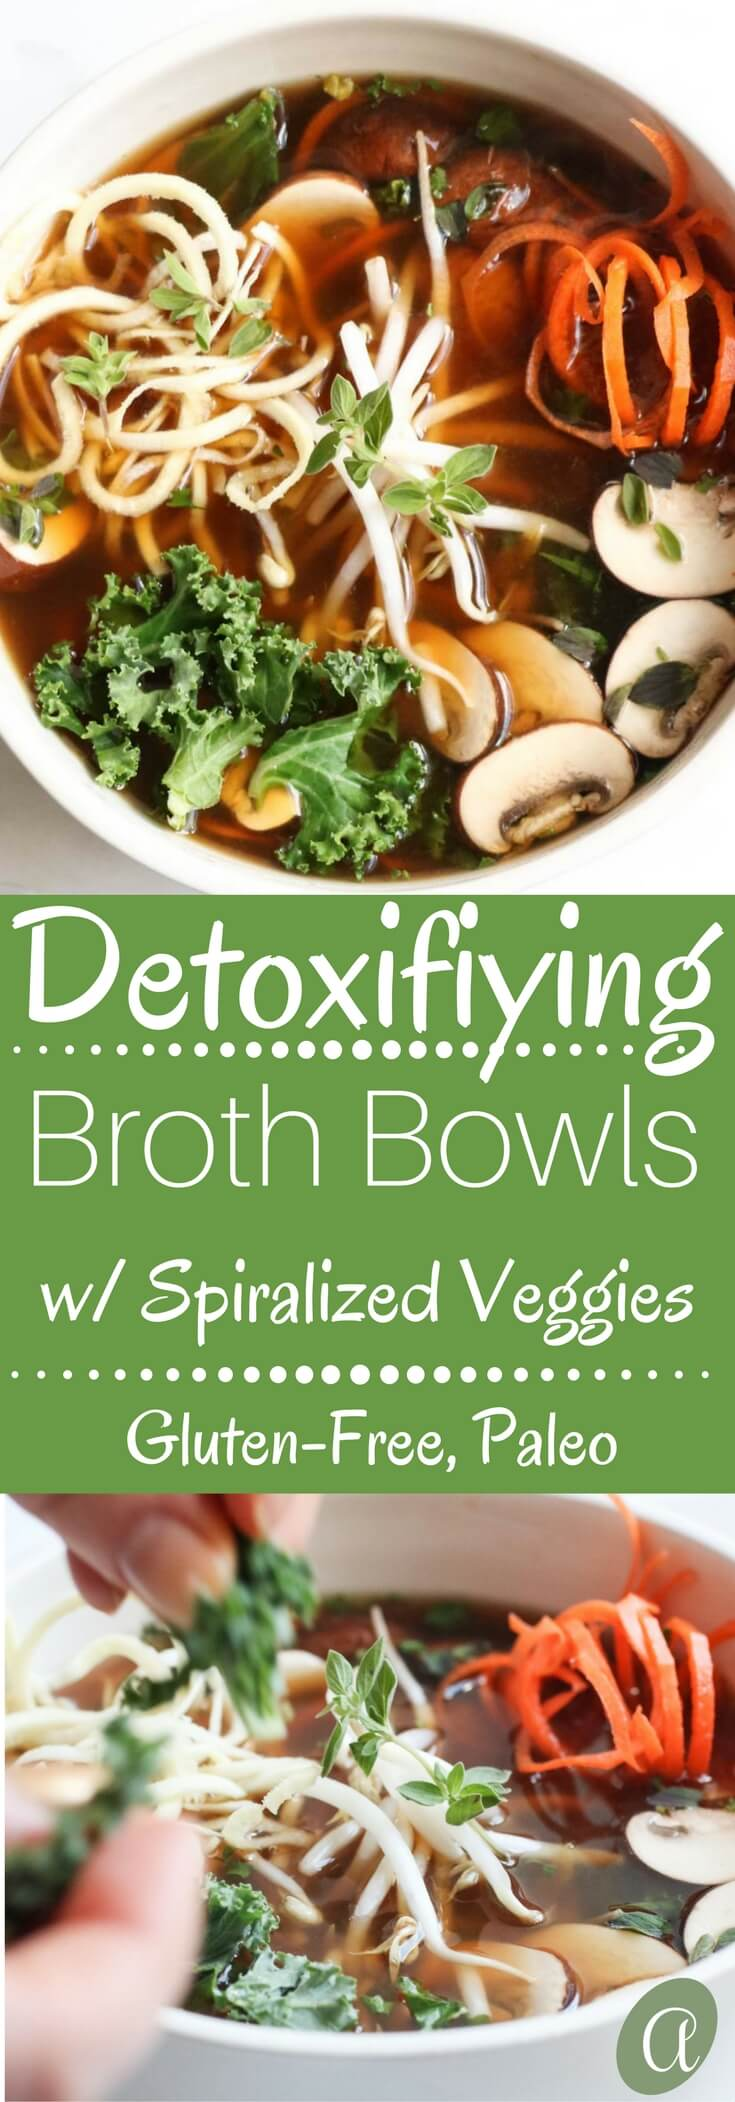 Detoxifying broth bowls with parsnip and carrot noodles is a paleo and gluten-free meal that is chocked full of anti-inflammatory, nutrient dense veggies. Healthy, quick, and super yummy! #paleo #bonebroth #detox